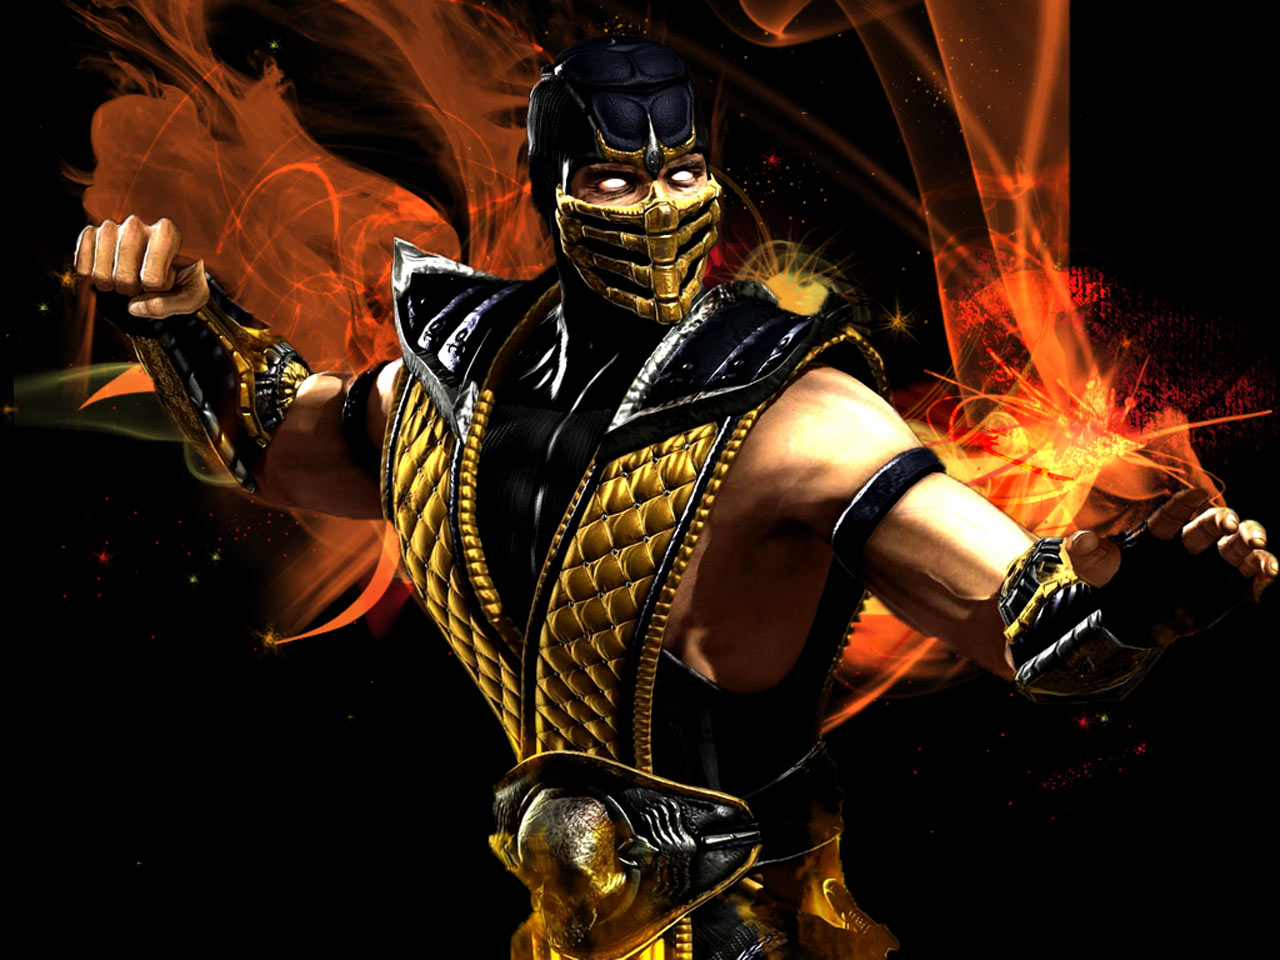 Scorpion Wallpaper Mk 1 1280x960